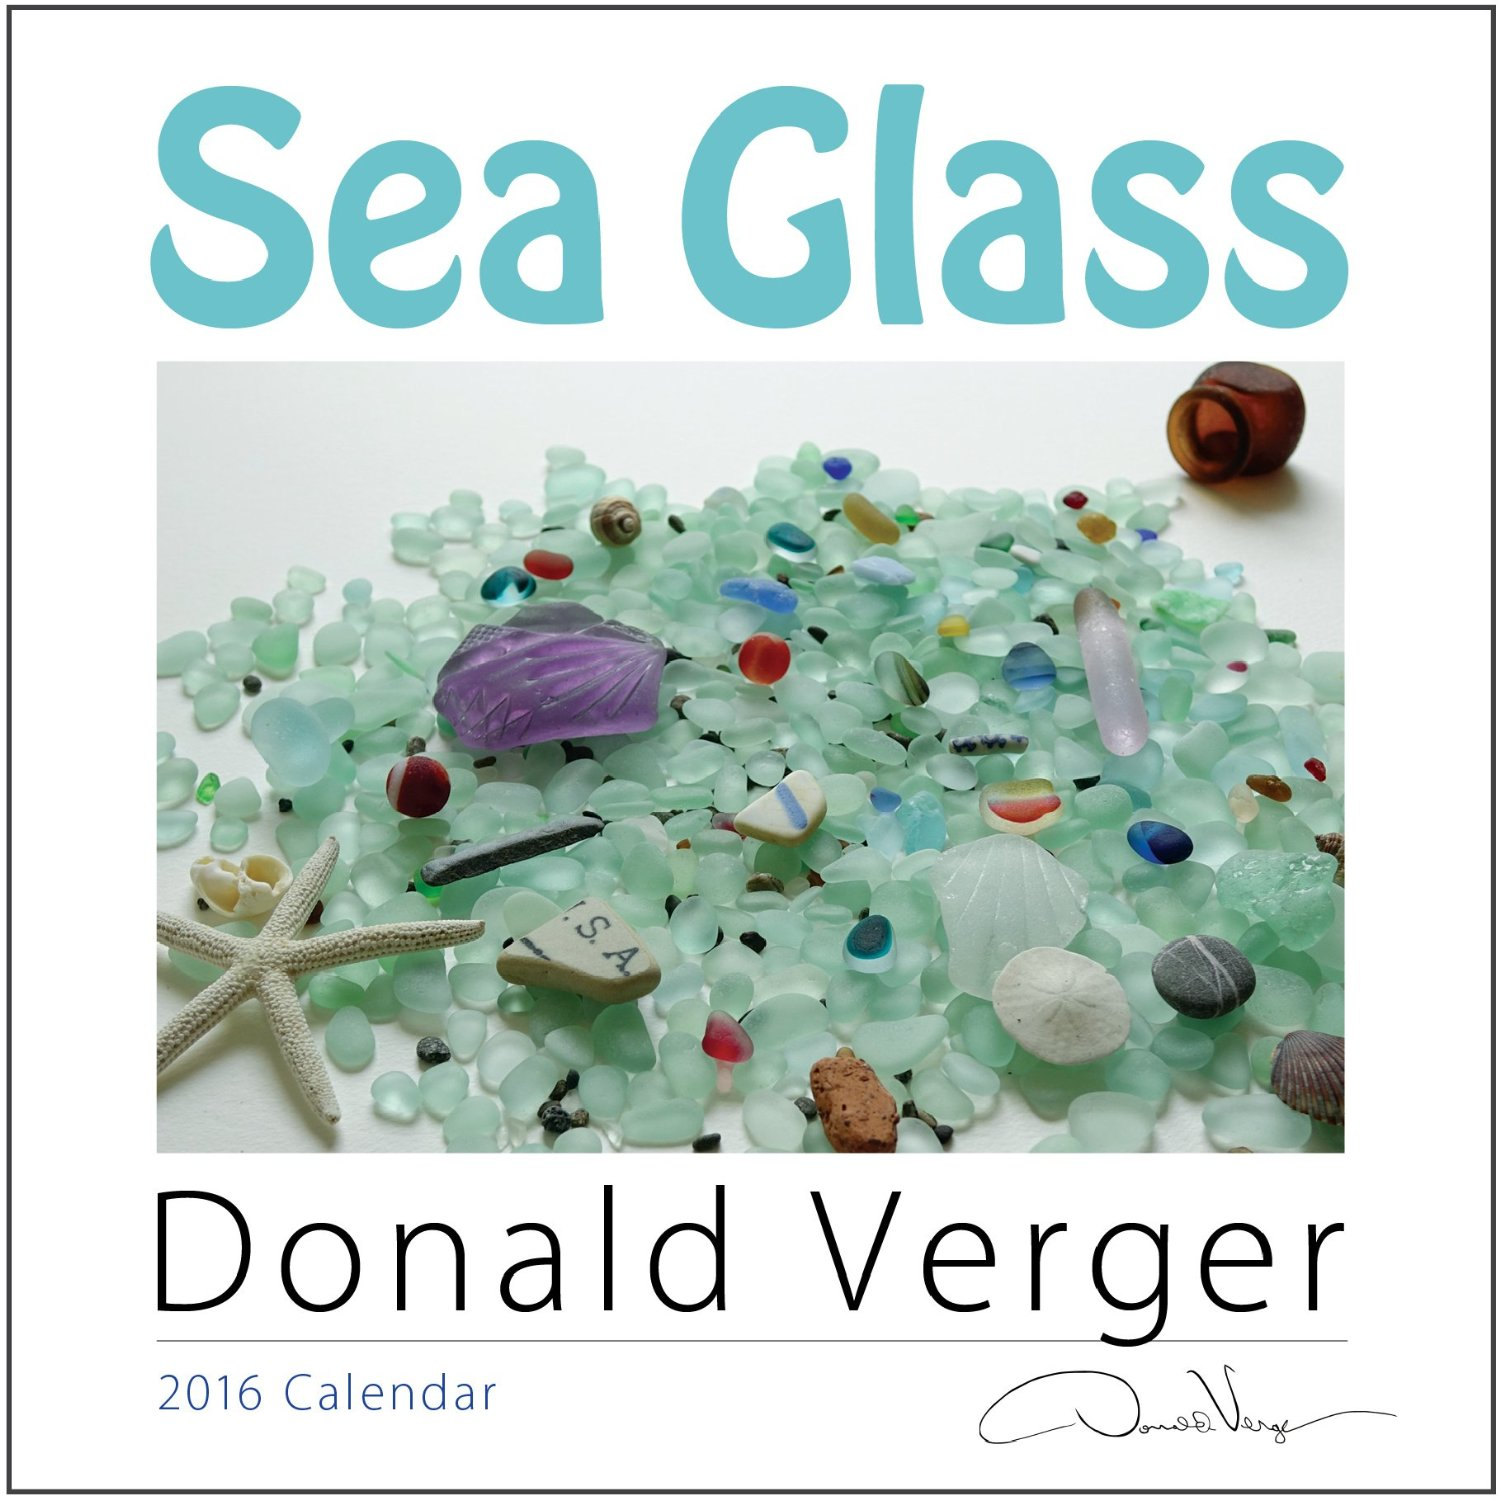 2016 sea glass calendar cover